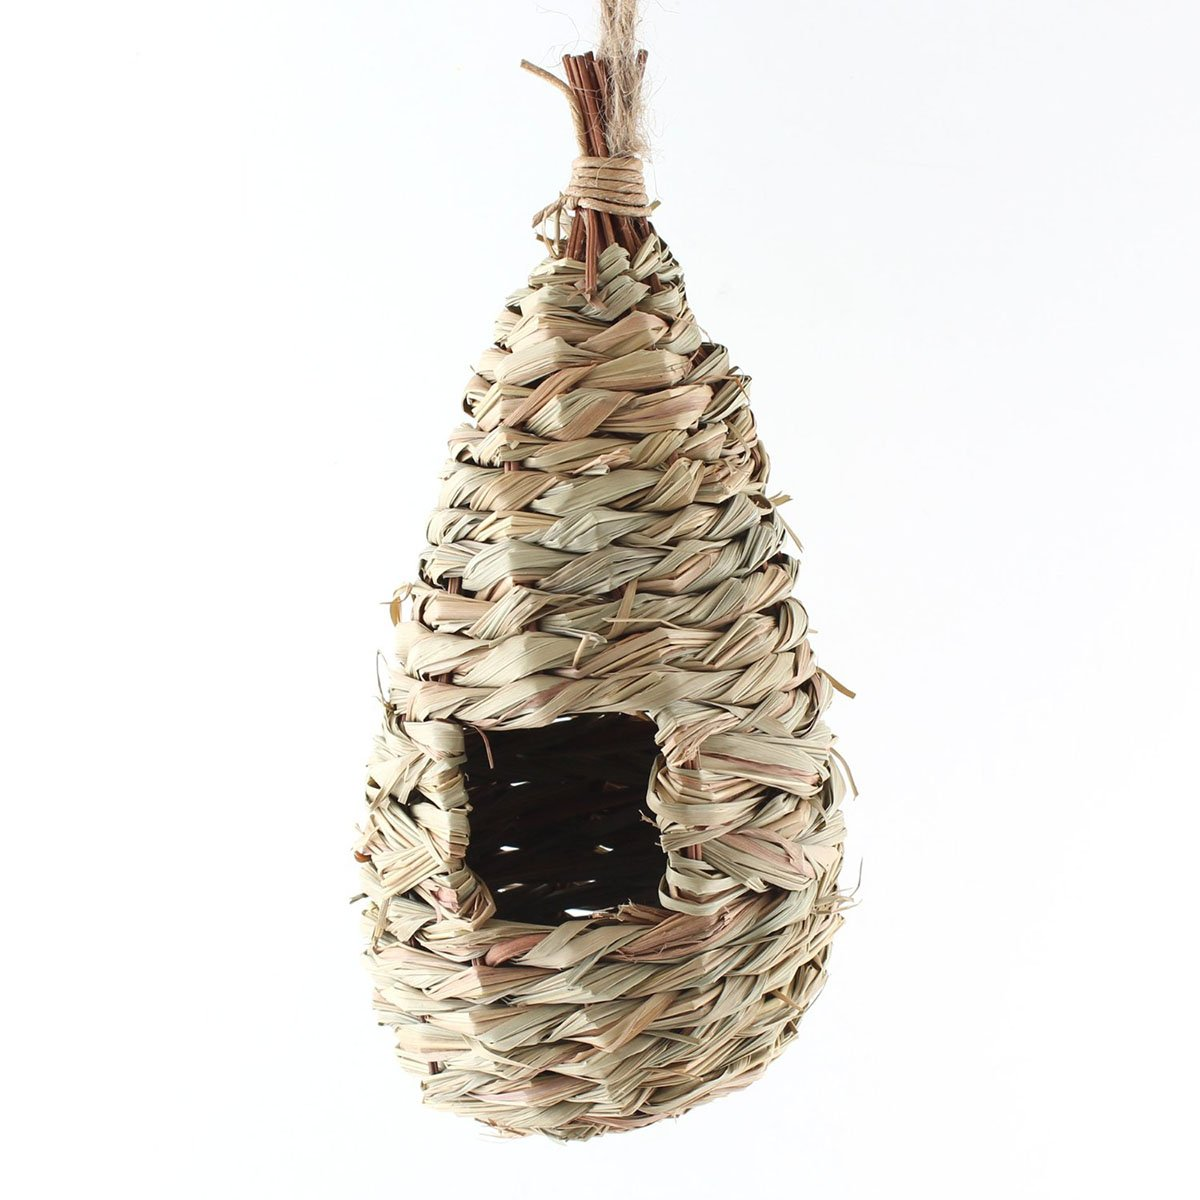 UEETEK Natural Woven Grass Hanging Birdhouse Nest